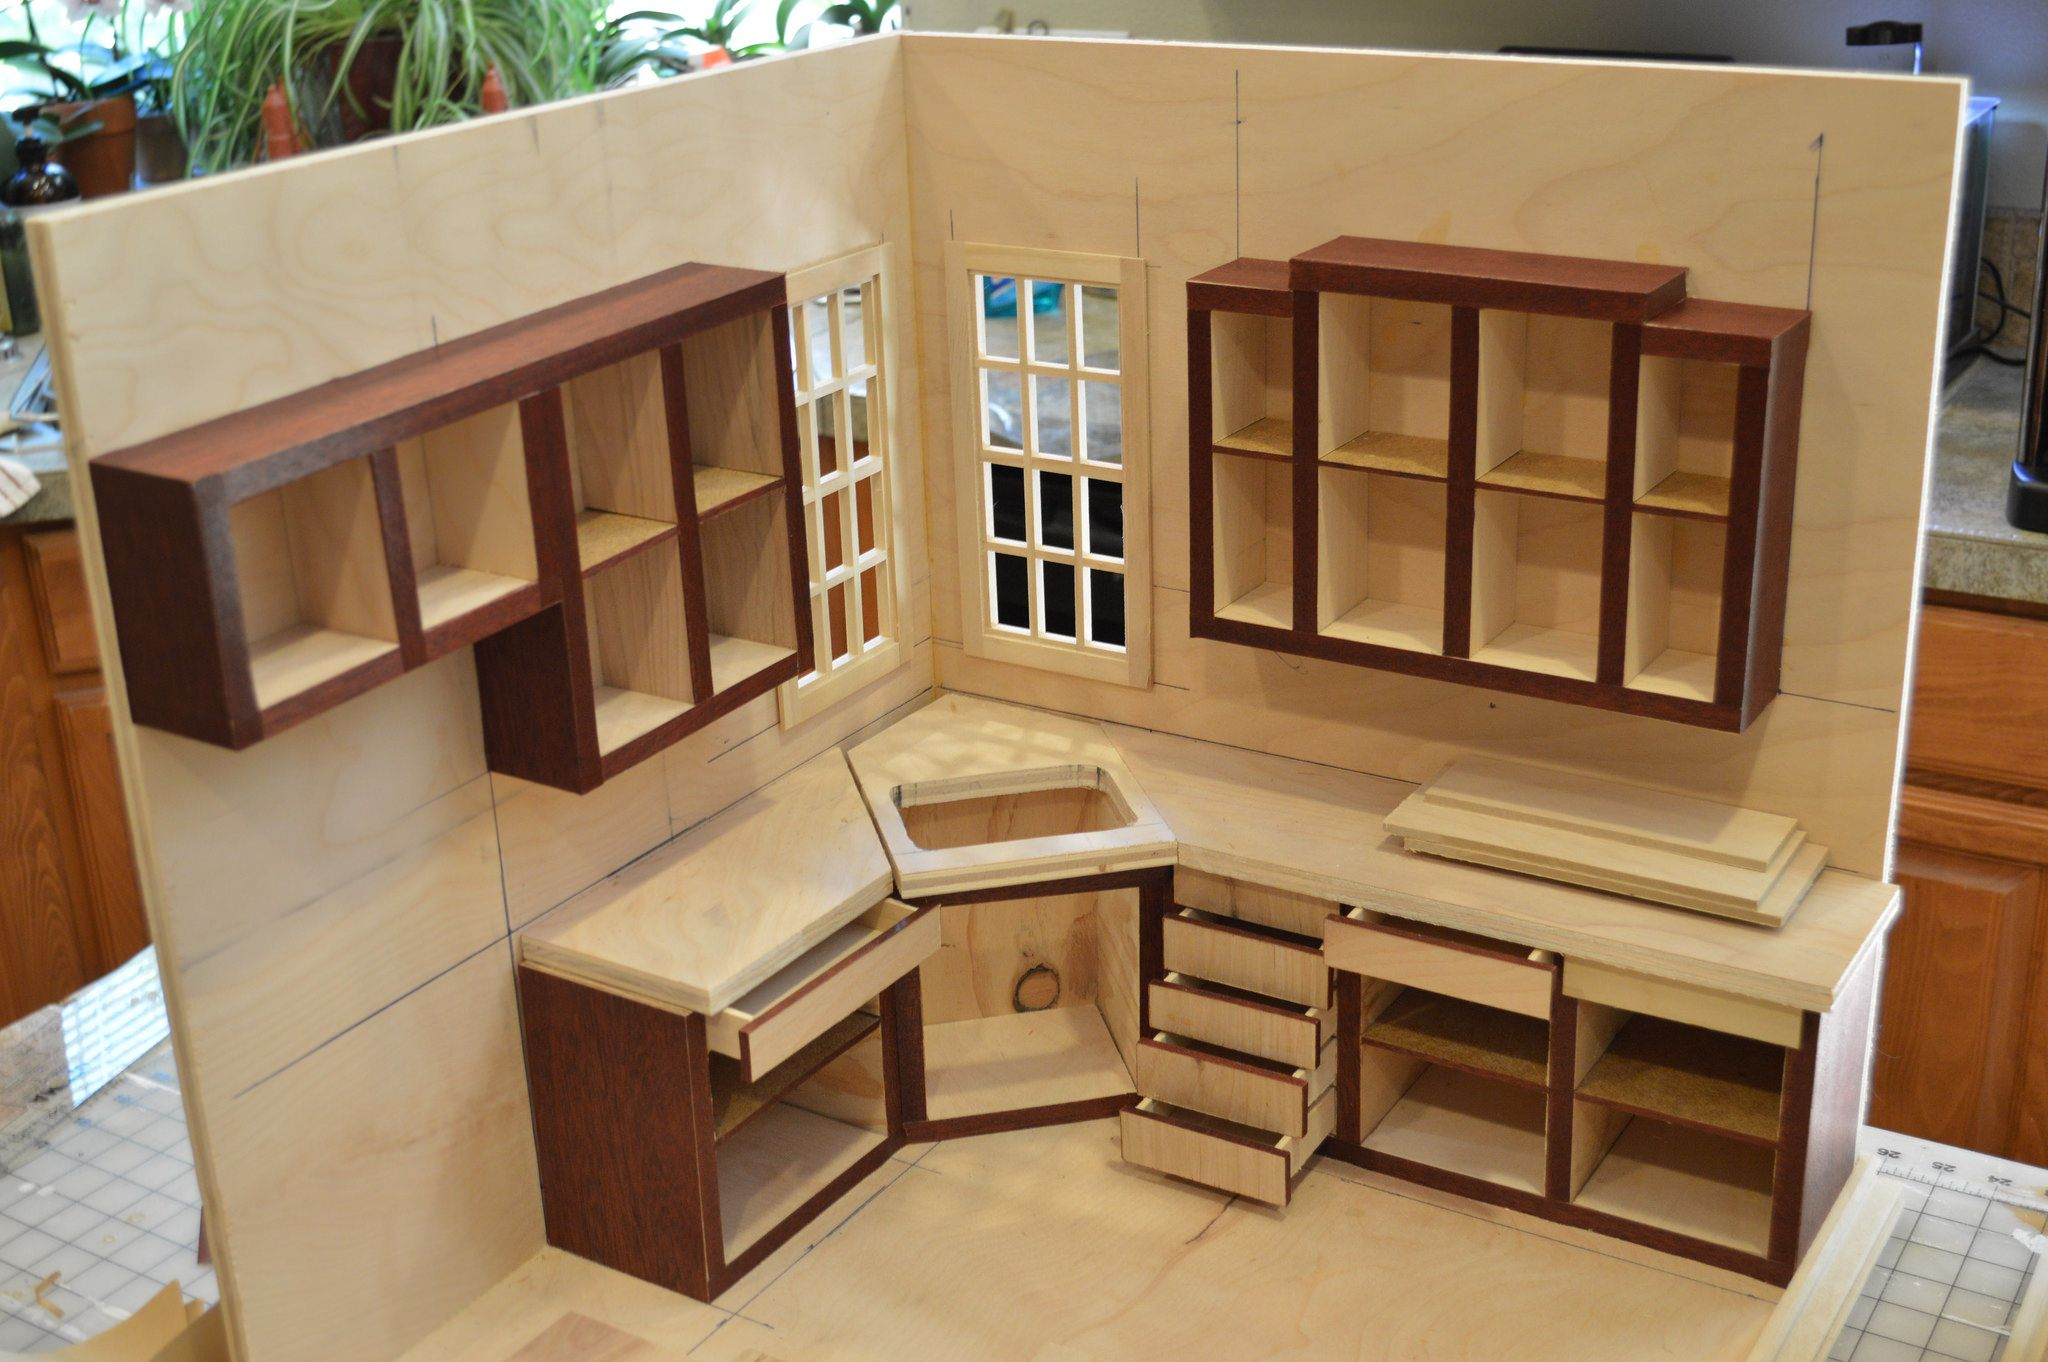 1 6 Scale Kitchen Project Doll House Plans Barbie House Furniture Doll Furniture Diy